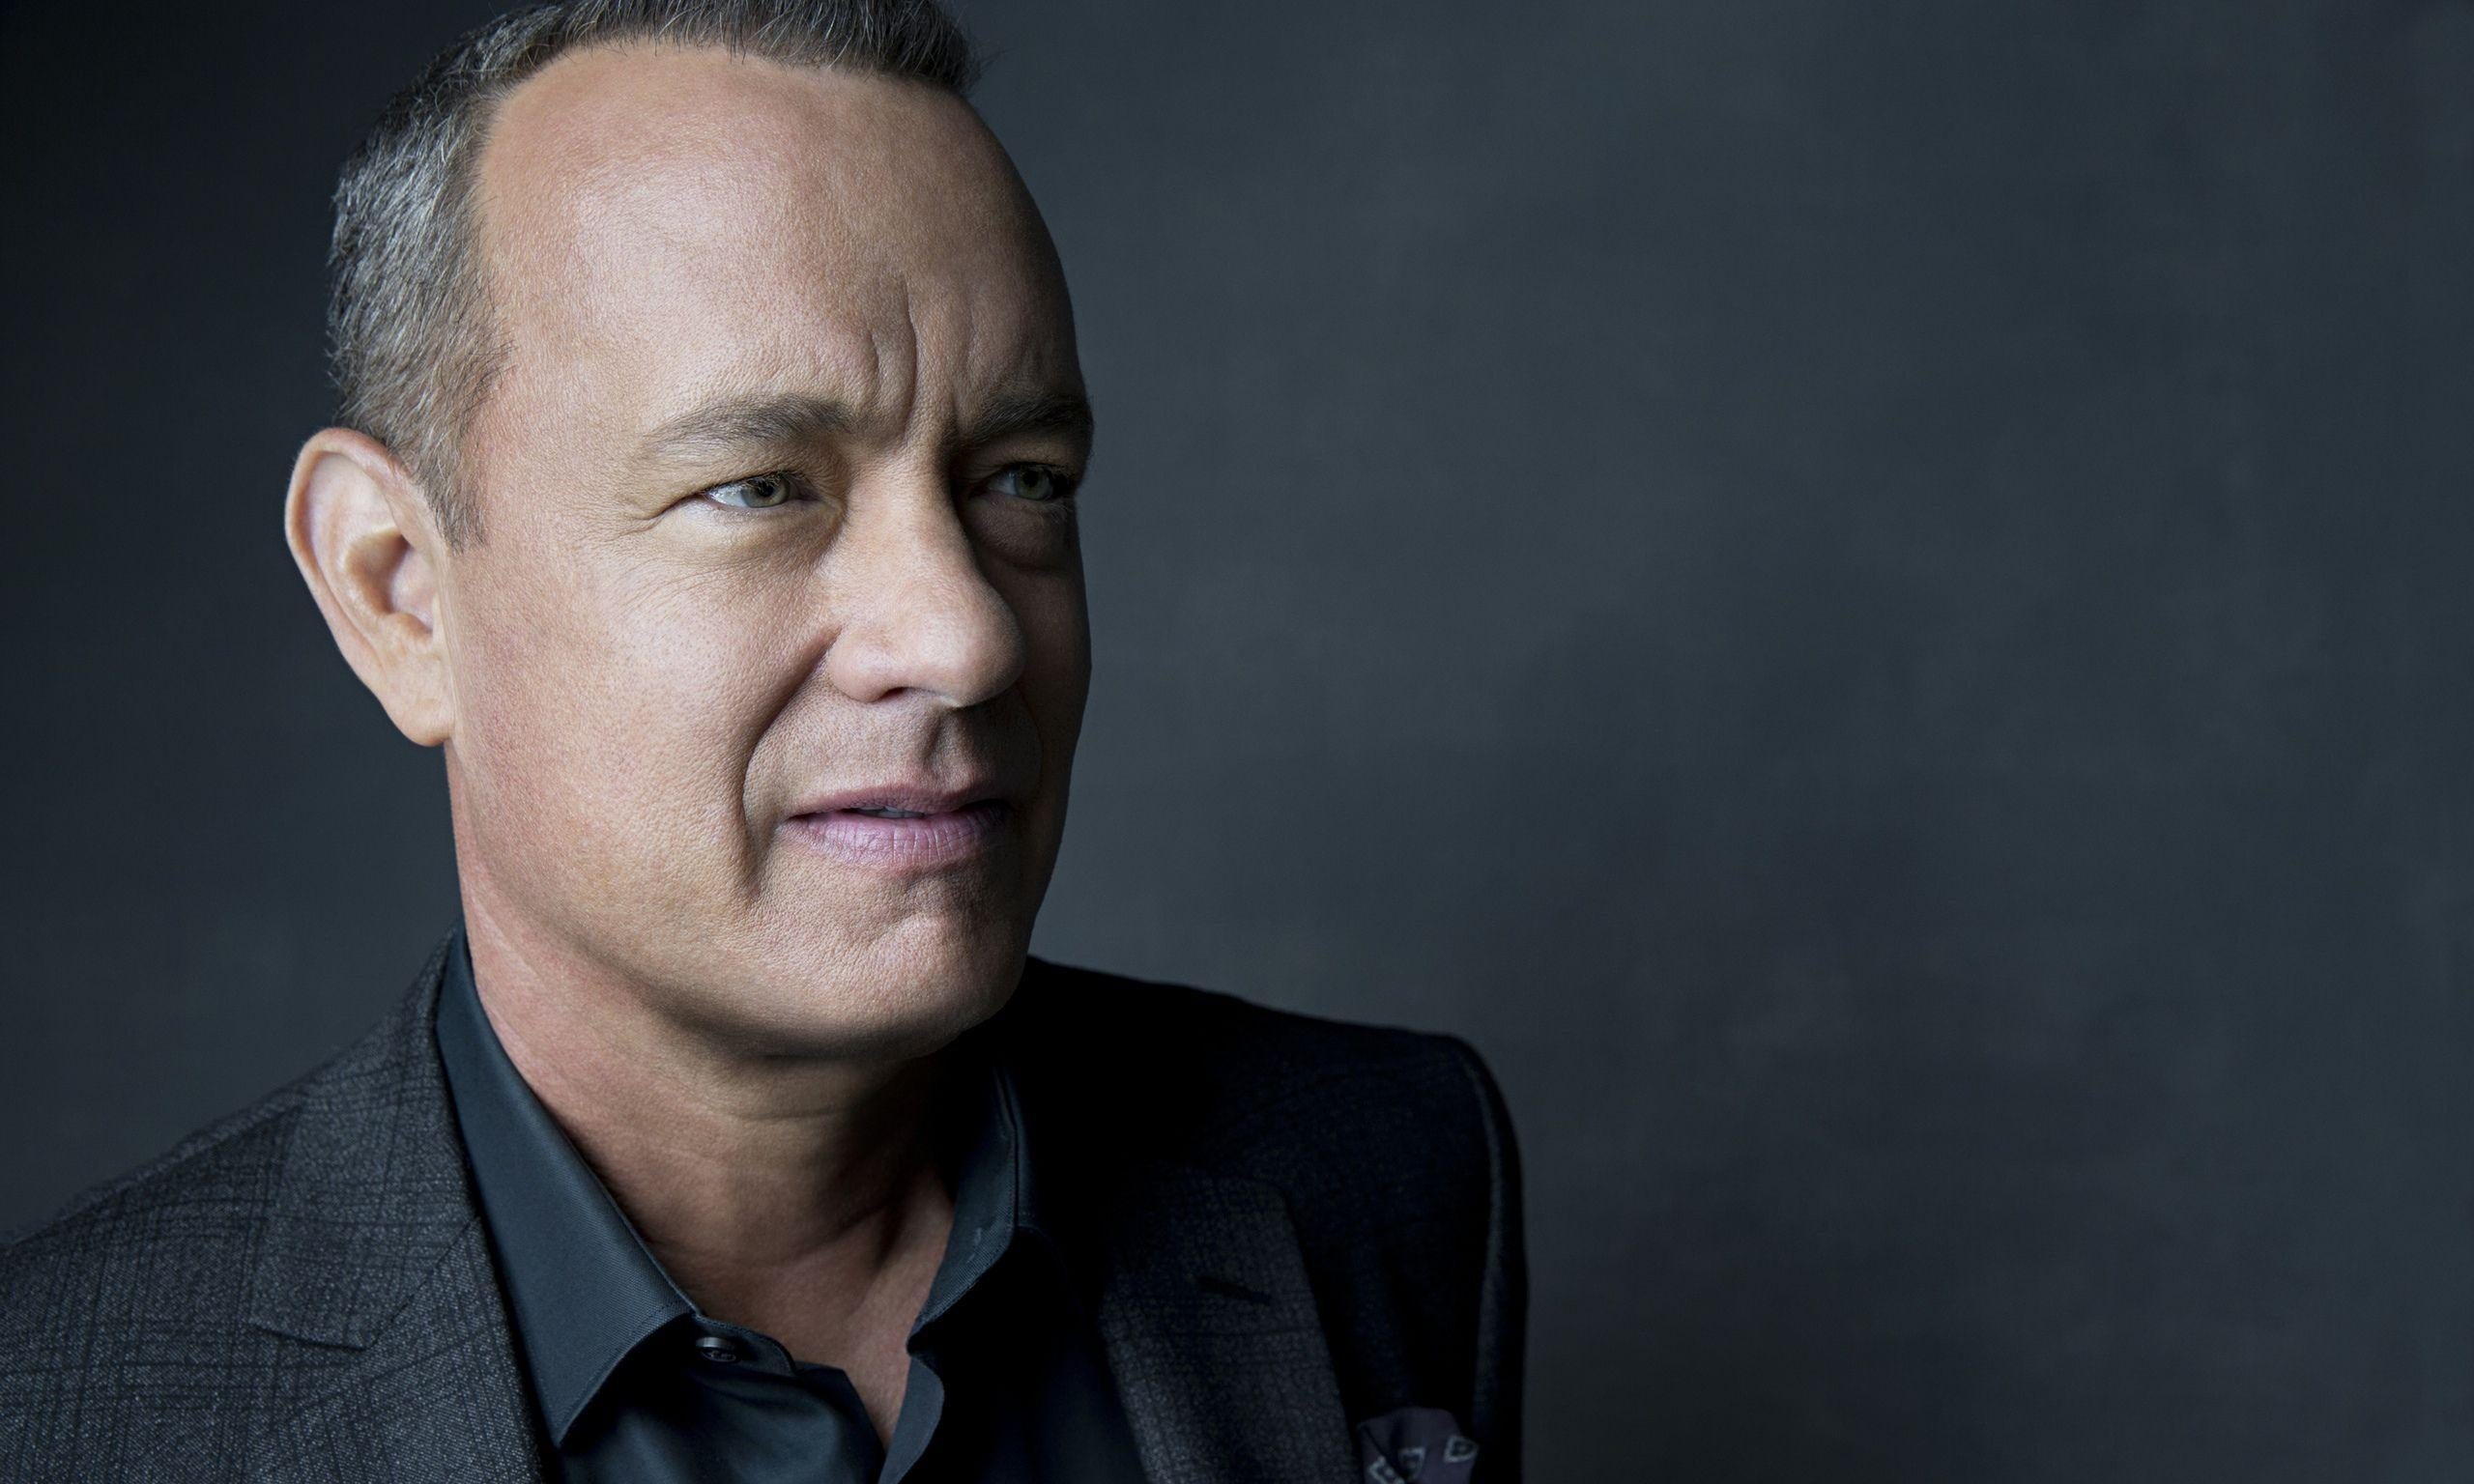 Tom Hanks Wallpapers High Resolution and Quality Download